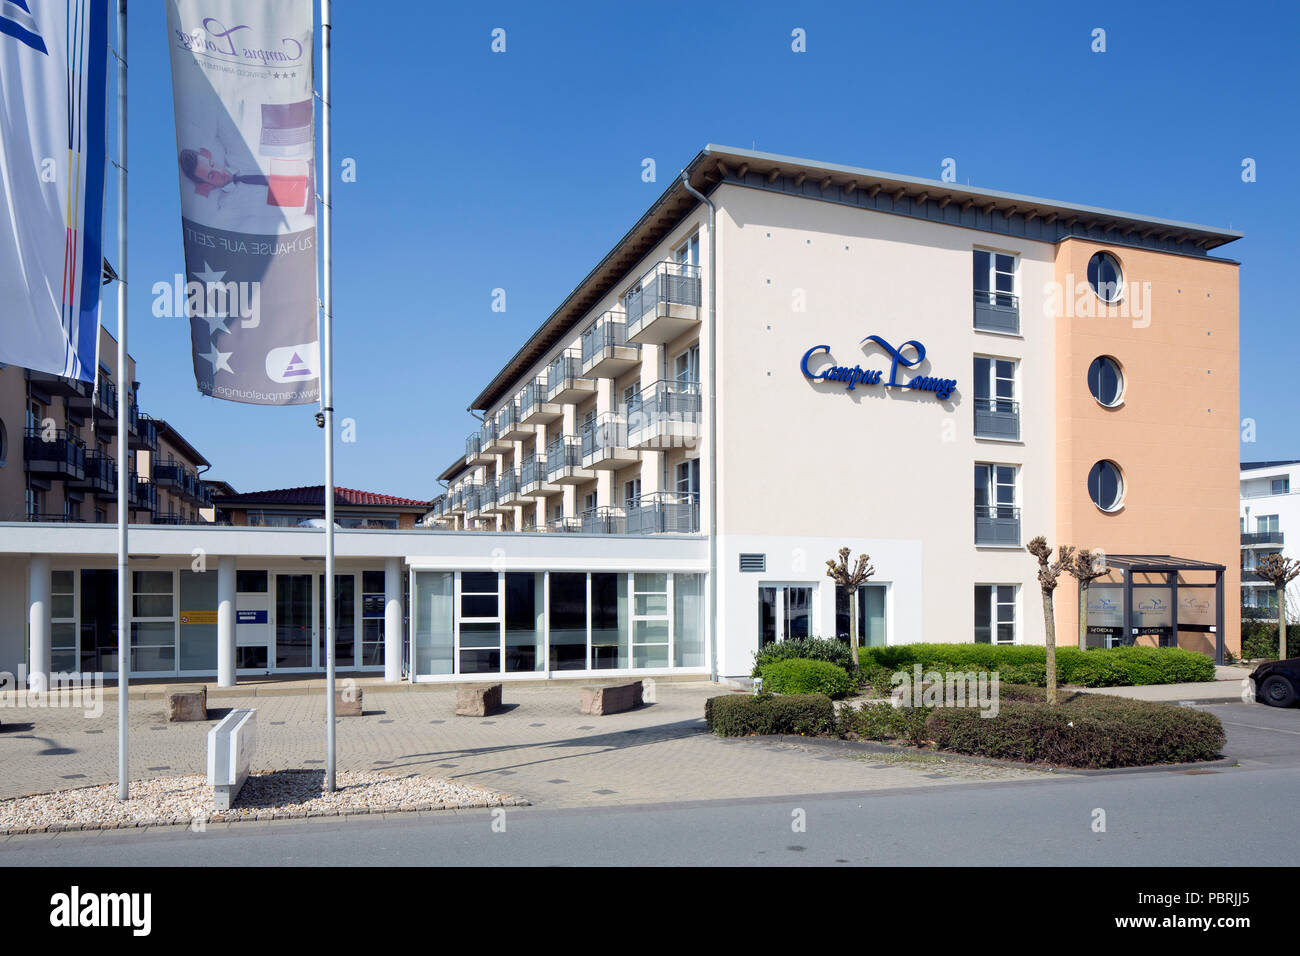 Campus Lounge, Boarding House and Convention Center at the main campus of the University of Paderborn, Paderborn - Stock Image